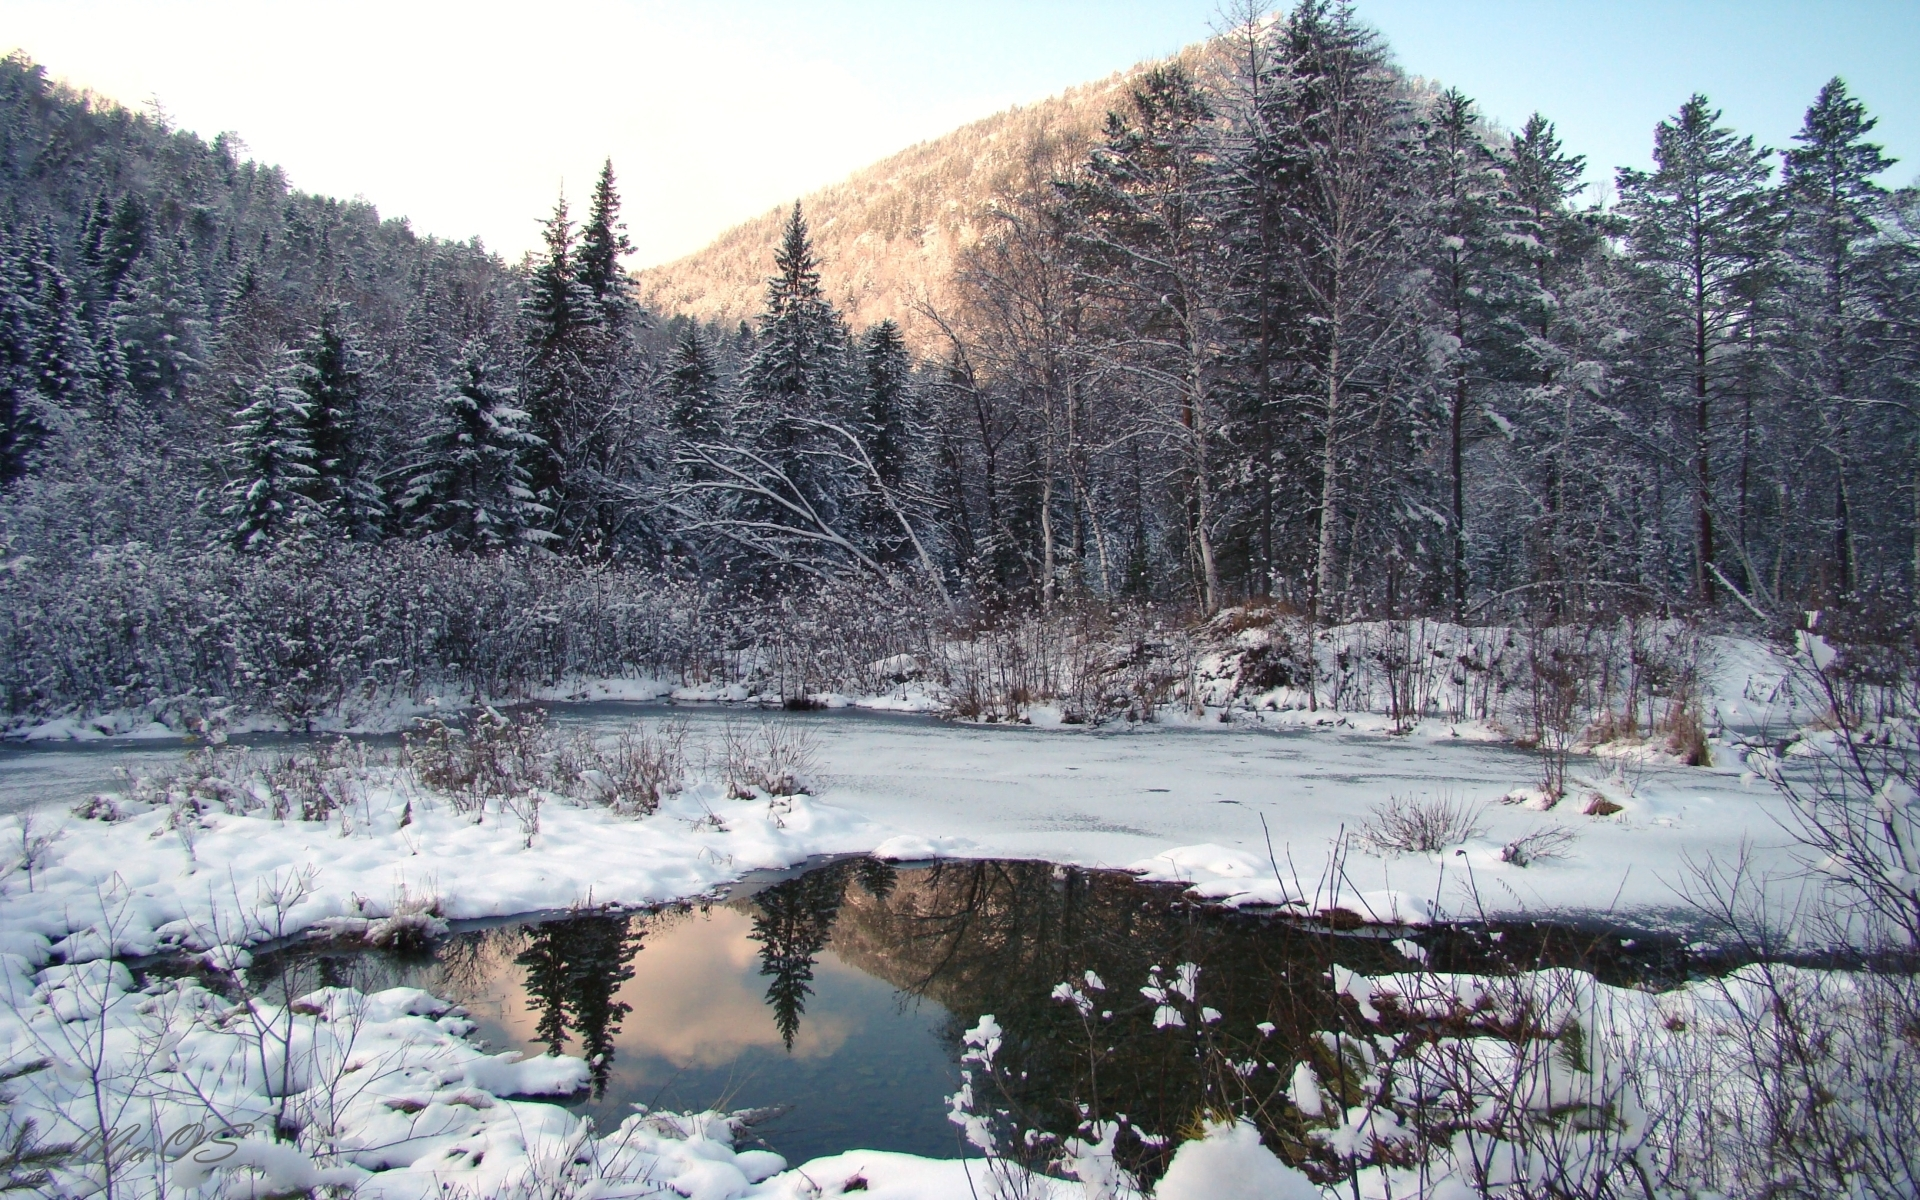 8068 download wallpaper Landscape, Winter, Trees, Snow, Fir-Trees, Lakes screensavers and pictures for free